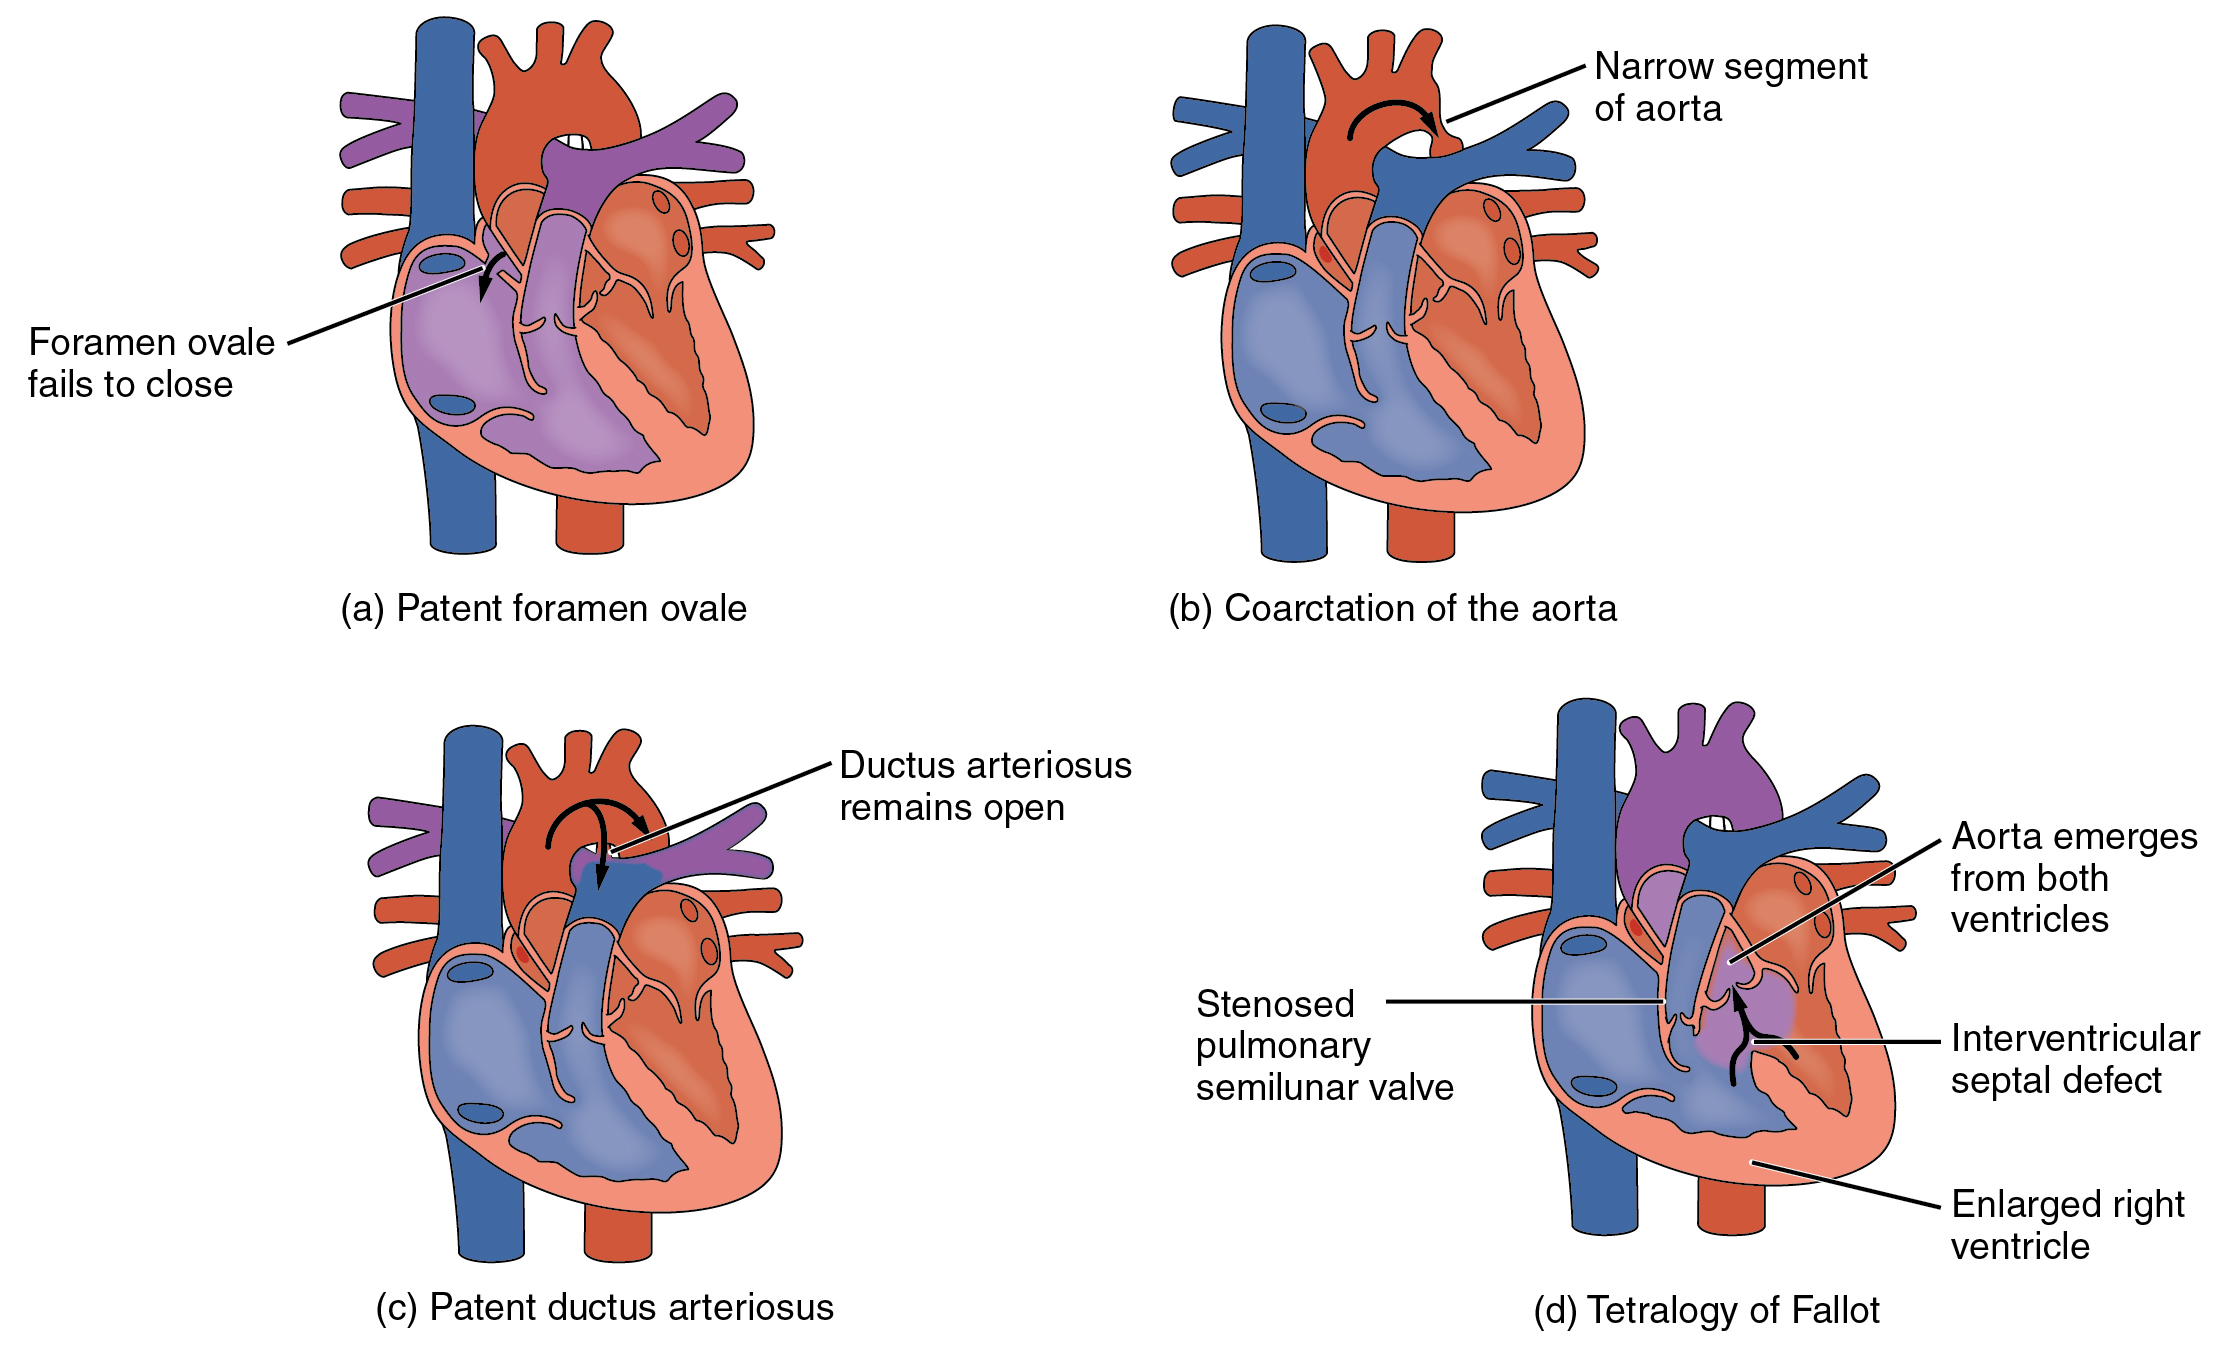 File:2009 Congenital Heart Defects.jpg - Wikimedia Commons